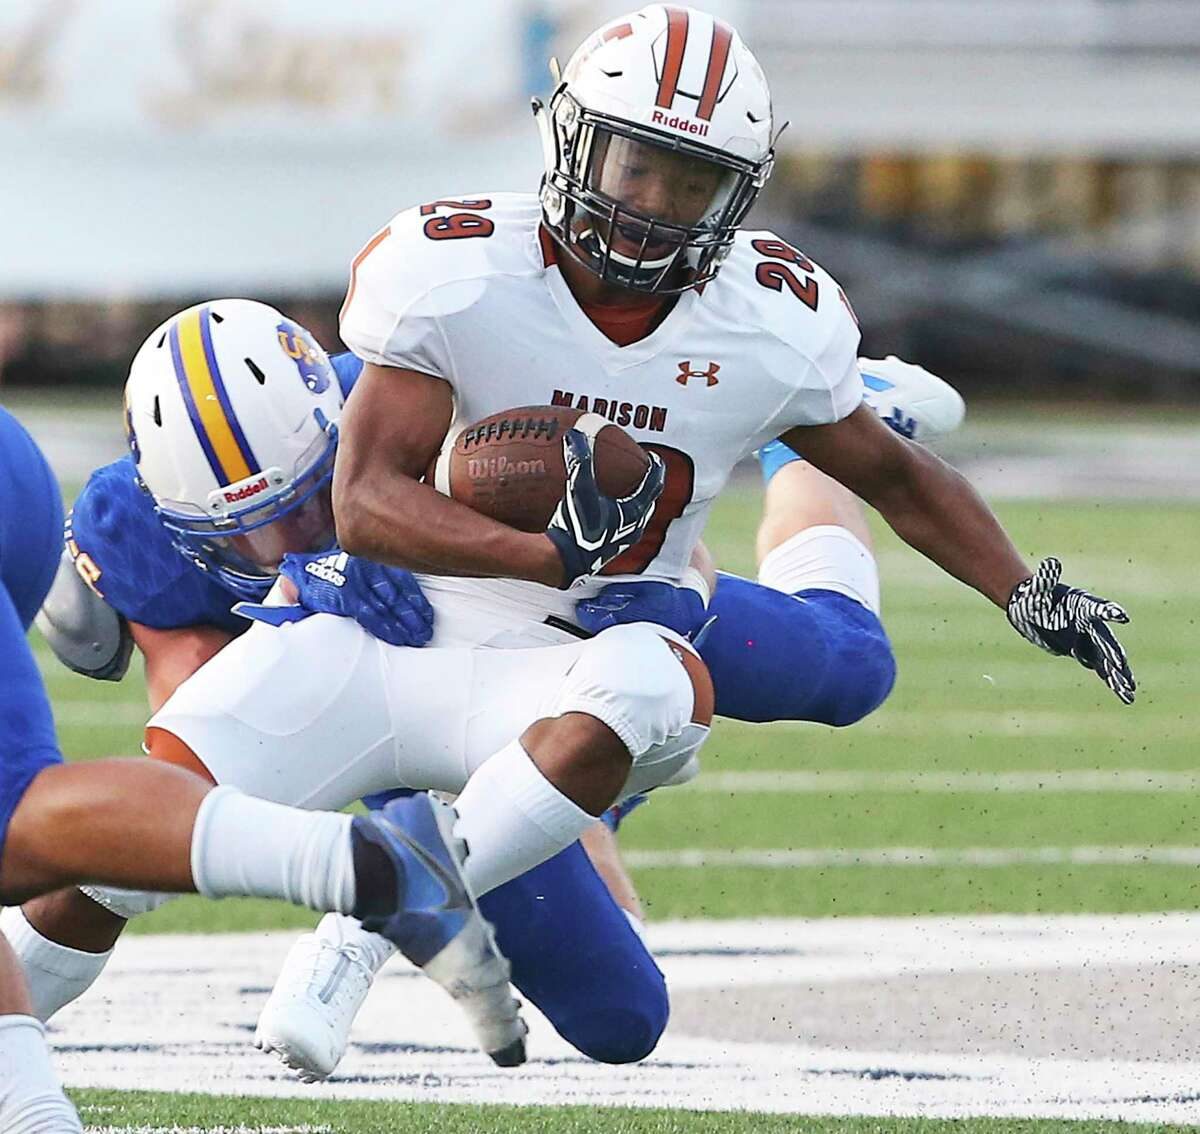 Maverick running back Gabriel Green spins to get away from a tackler as Clemens hosts Madison at Lehnhoff Stadium on August 30, 2019.